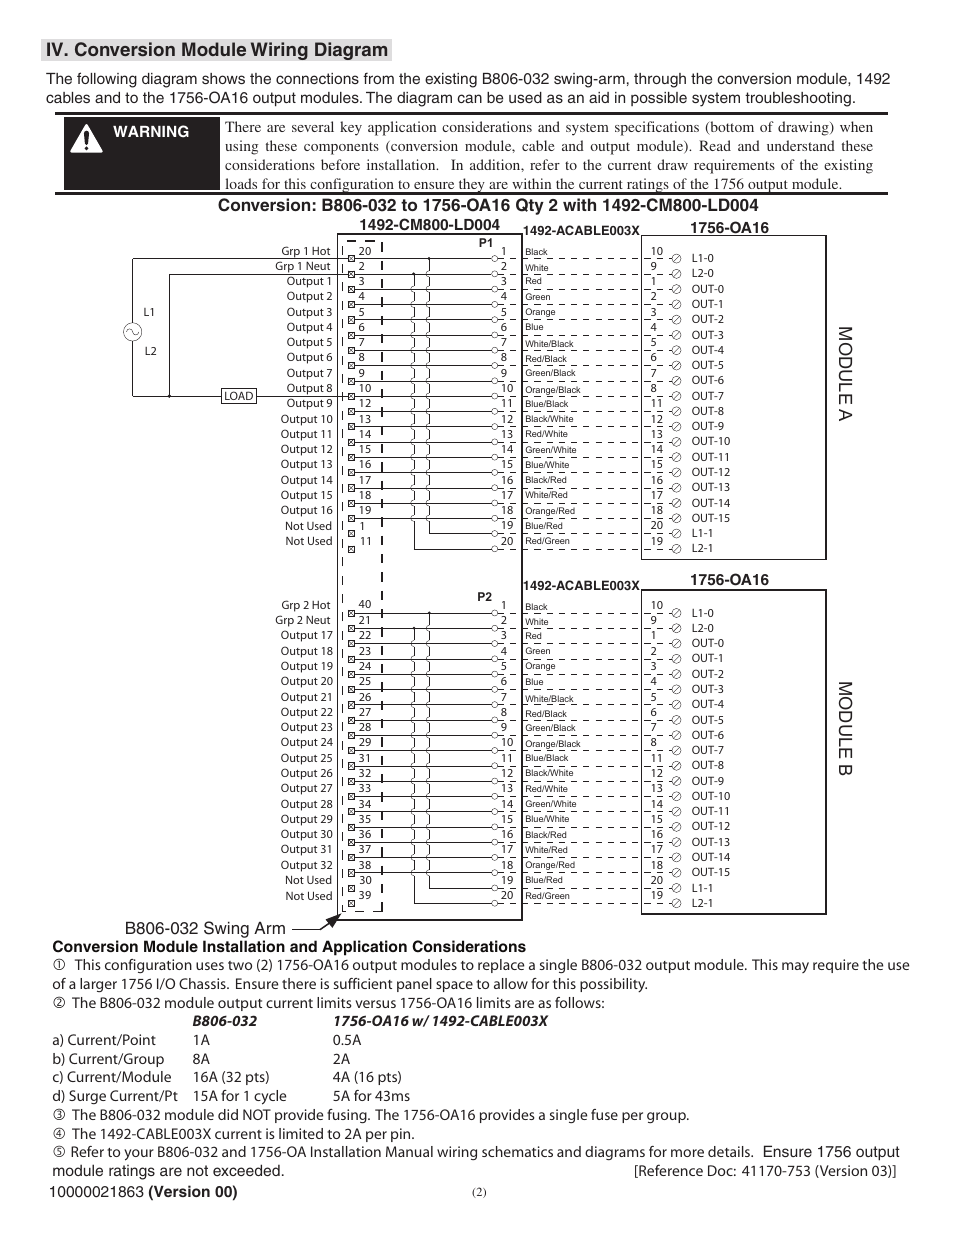 rockwell automation 1492 cm800 ld004 field wire conv module for modicon b806 032 to 1756 oa16 page2?resize\\\=665%2C861 hyosung gt250r wiring diagram beta wiring diagram, tomos wiring  at aneh.co